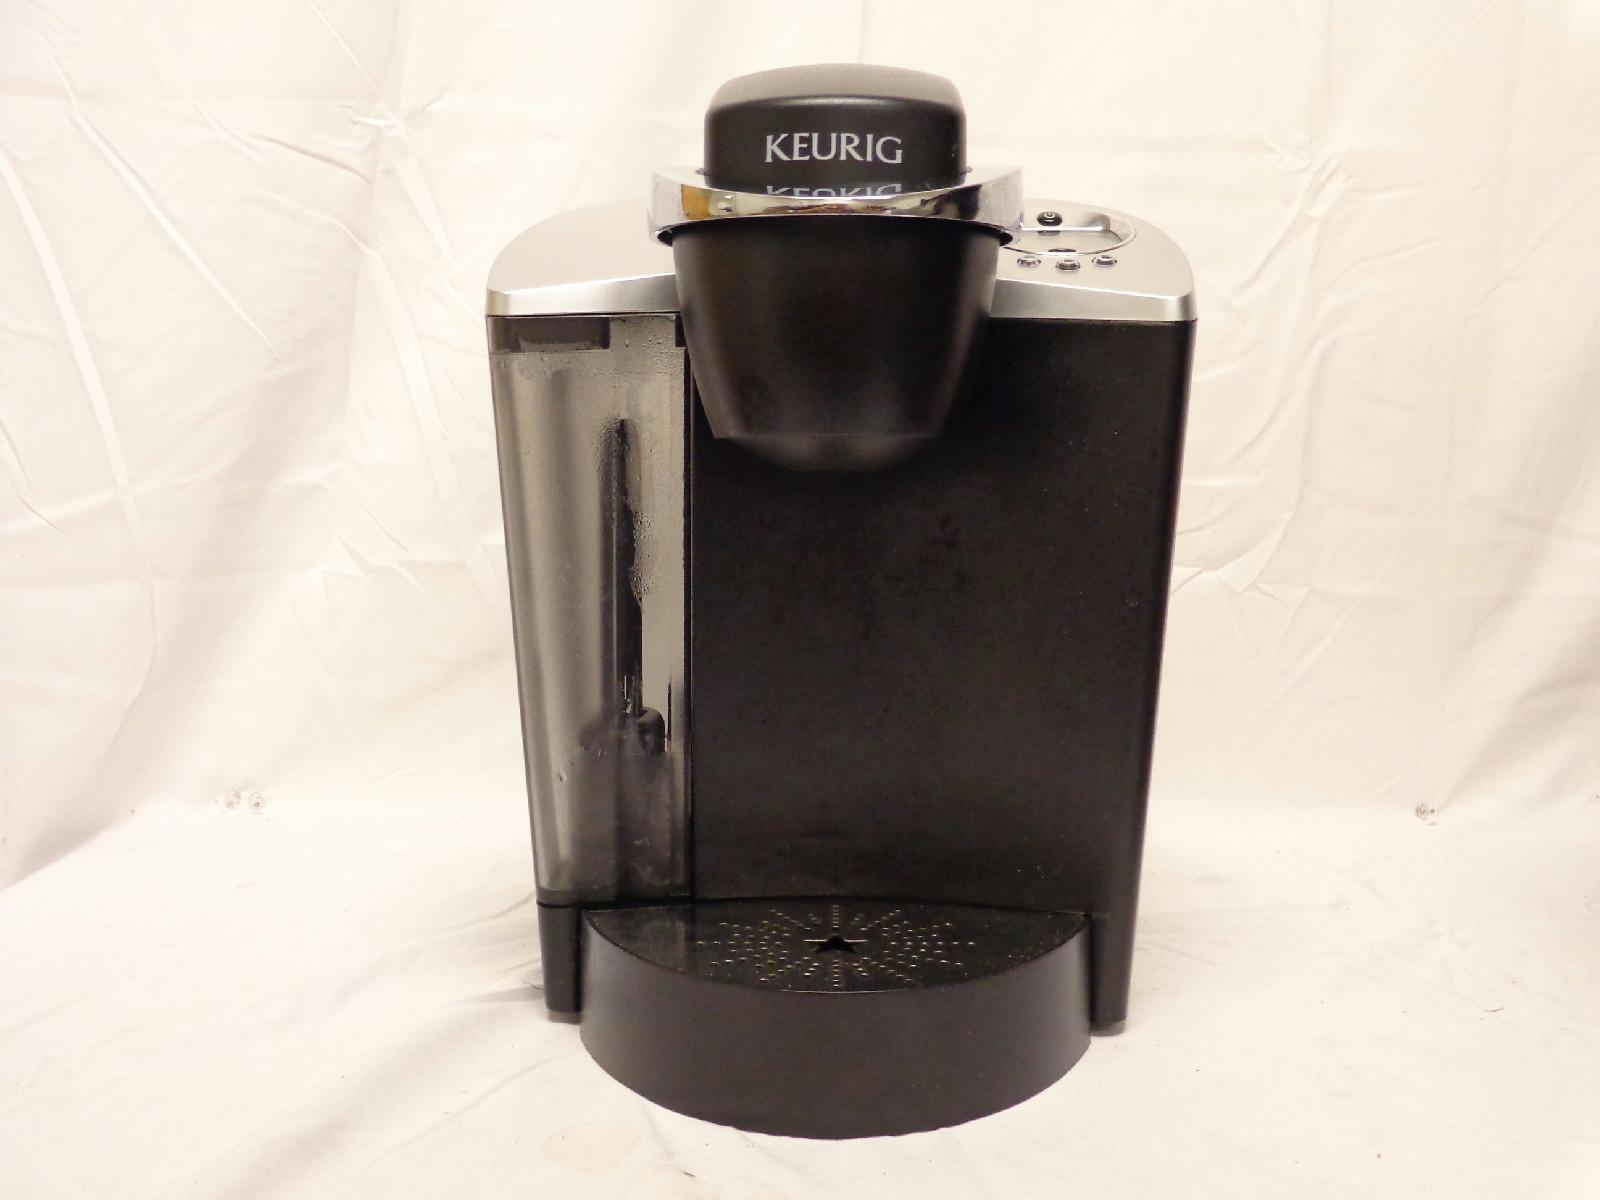 Keurig B60 Special Edition Brewing System 8 Cups Coffee Maker Black Silver eBay